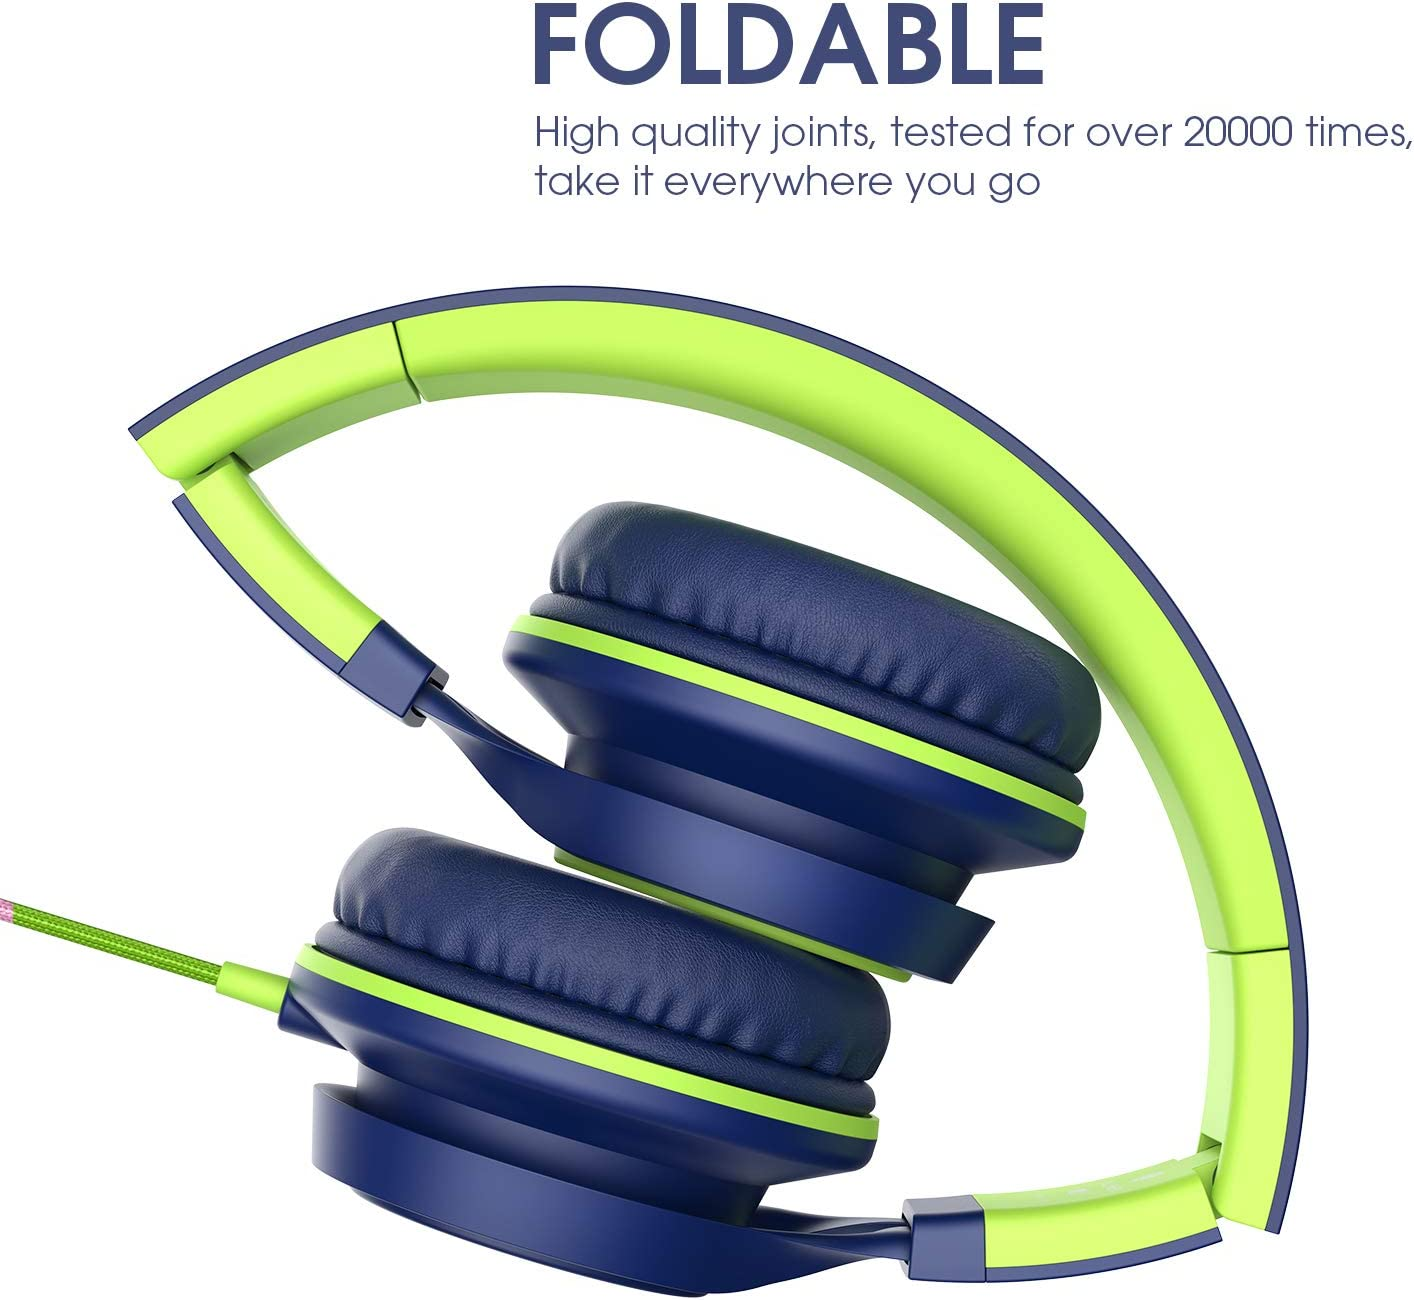 AILIHEN C8 (Upgraded) Headphones with Microphone and Volume Control Folding Lightweight Headset for Cellphones Tablets Smartphones Chromebook Laptop Computer PC Mp3/4 (Blue Green)